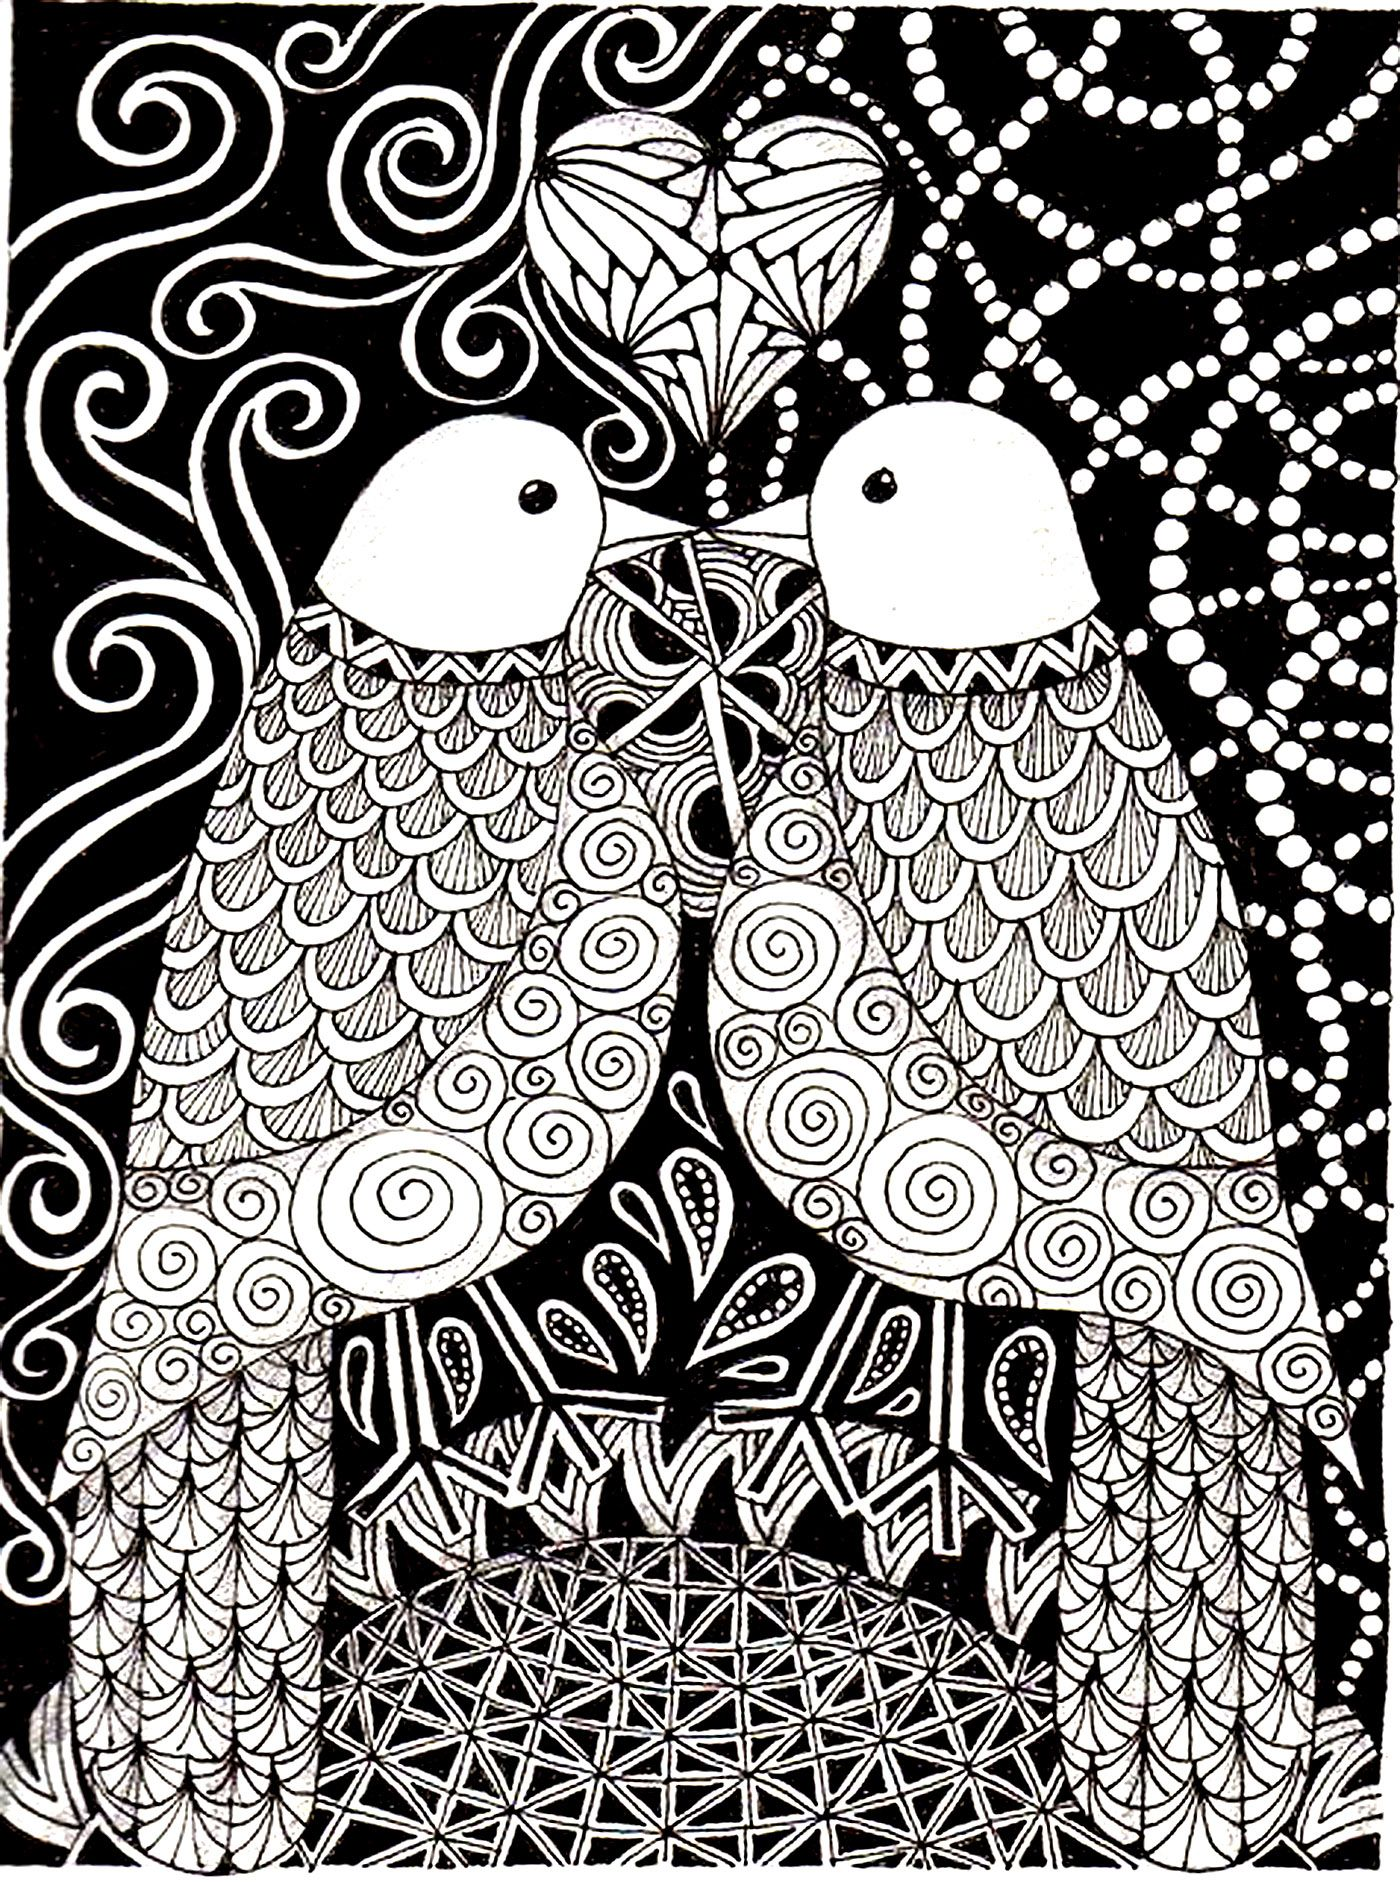 free coloring page coloring-adult-love-birds. two birds in love